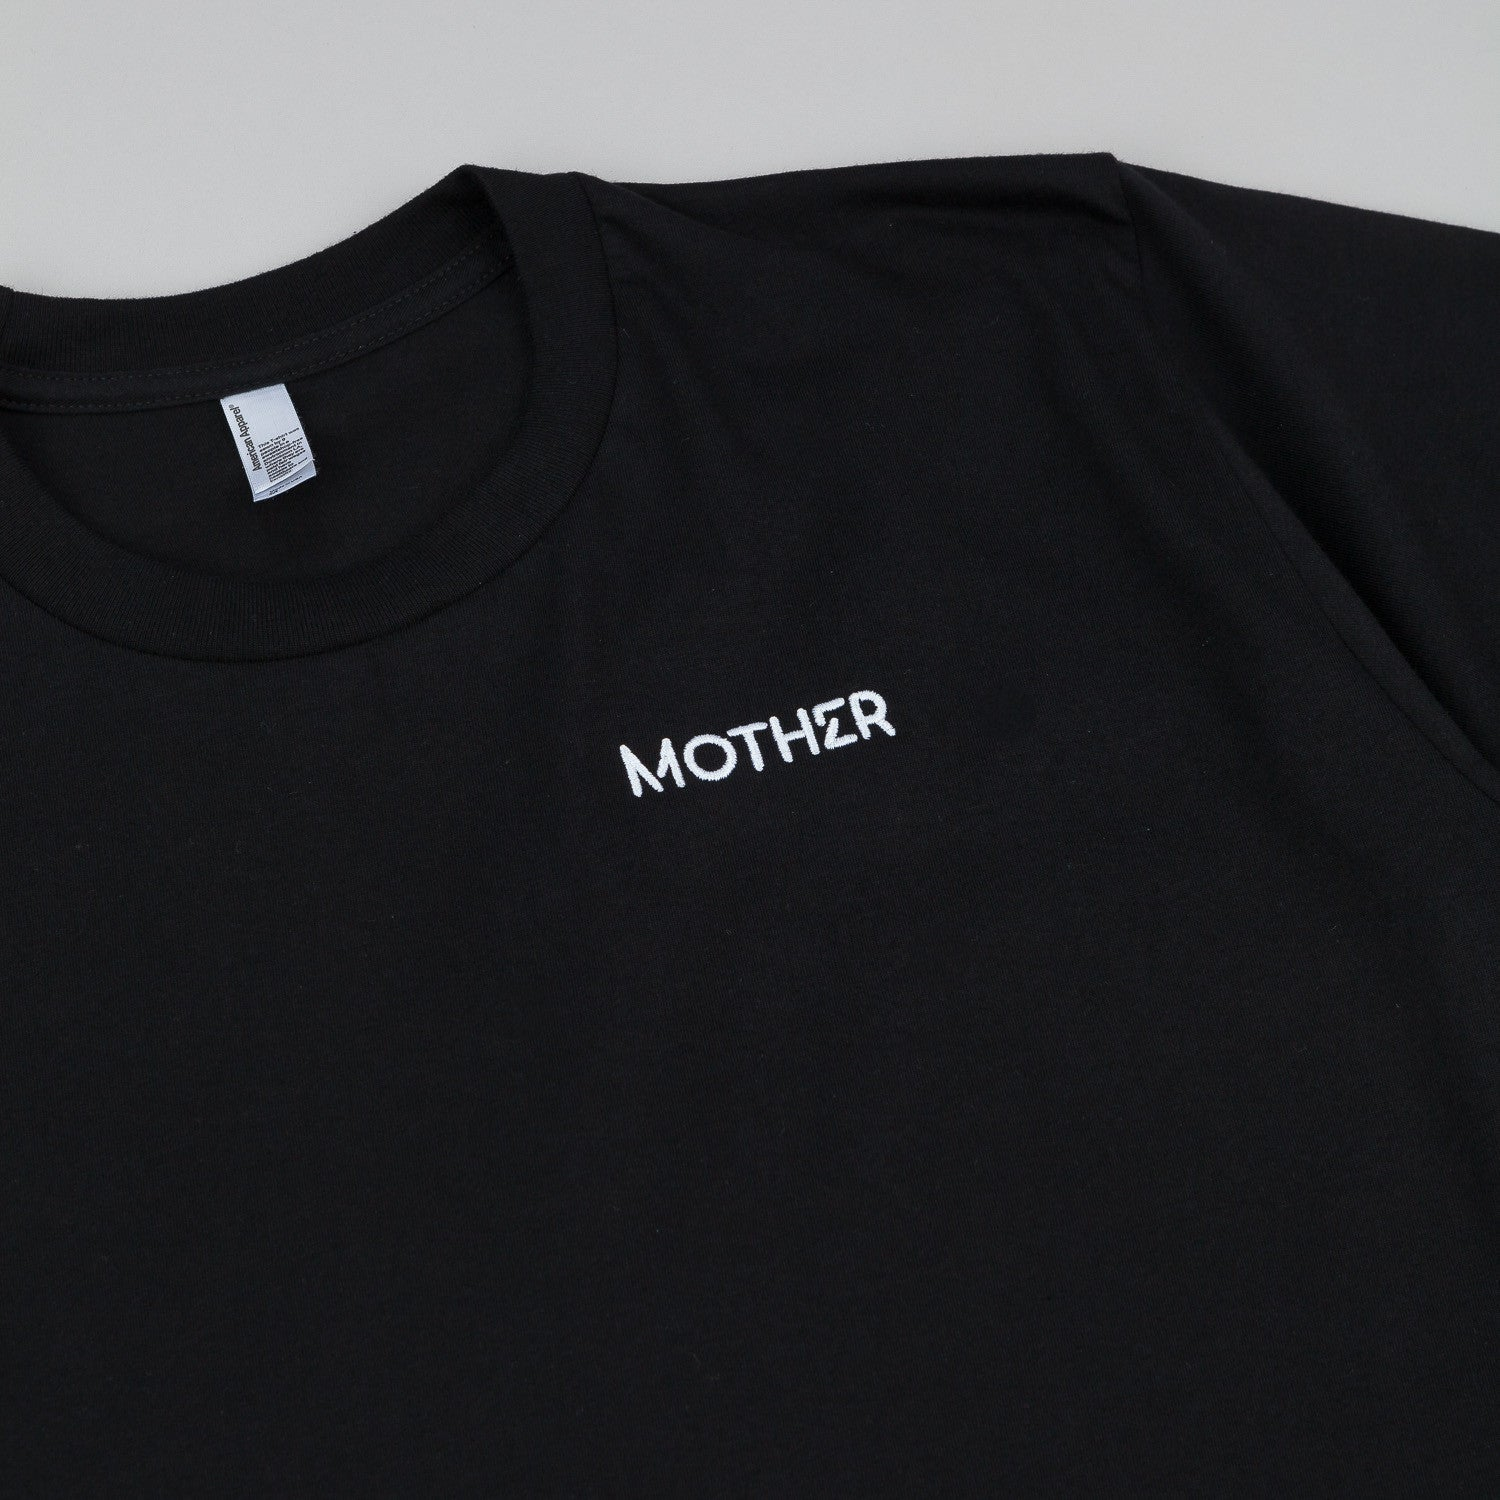 Mother Staff T-Shirt - Black